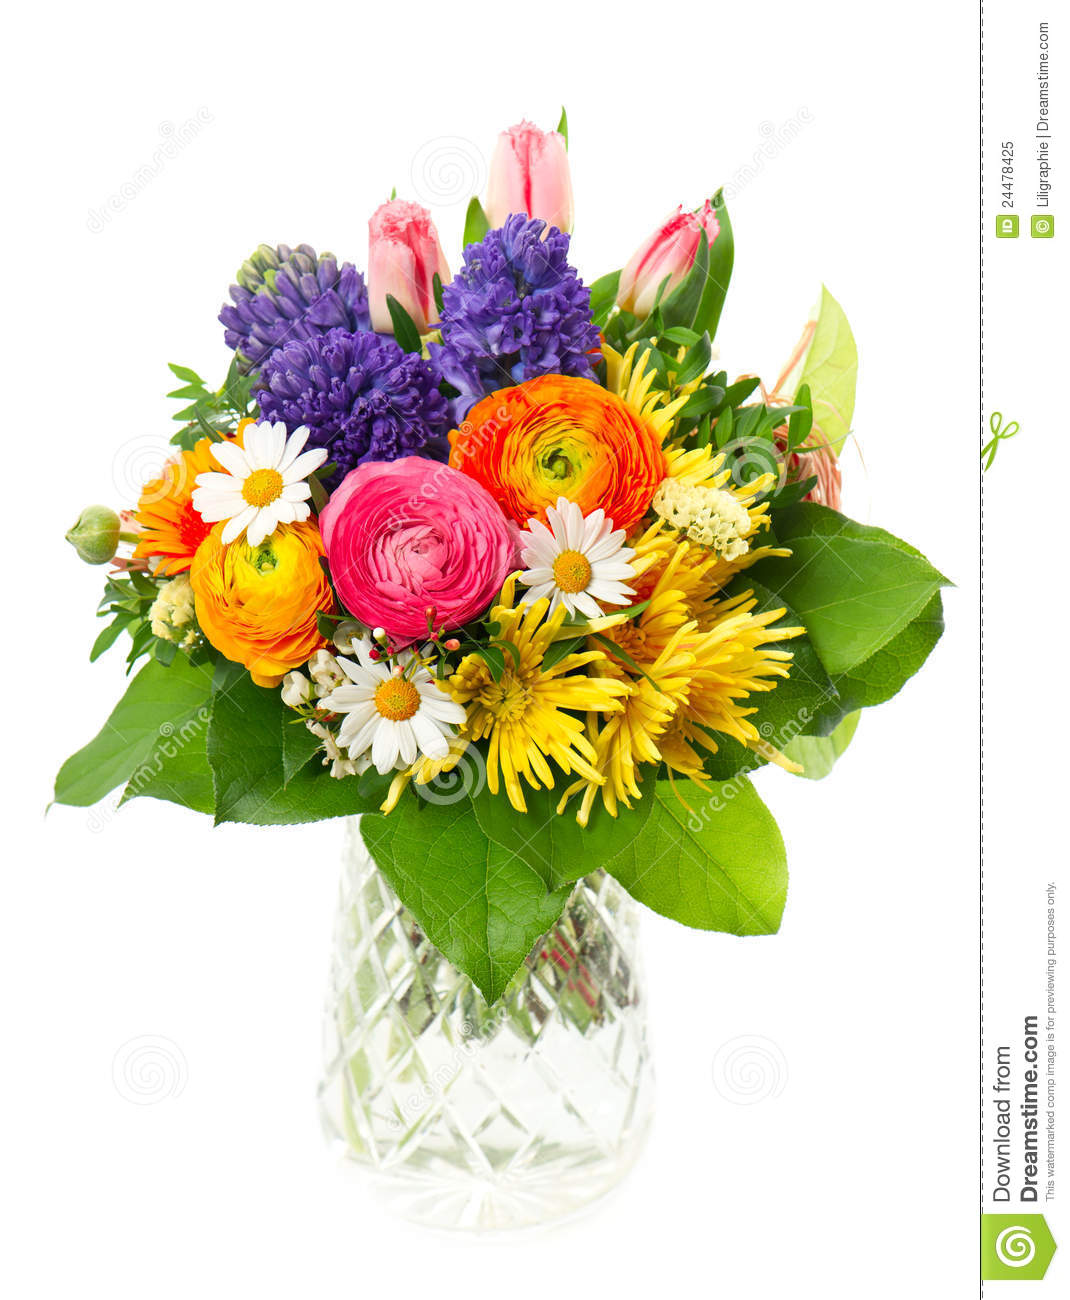 Beautiful bouquet of colorful spring flowers stock image image of download beautiful bouquet of colorful spring flowers stock image image of gift bunch izmirmasajfo